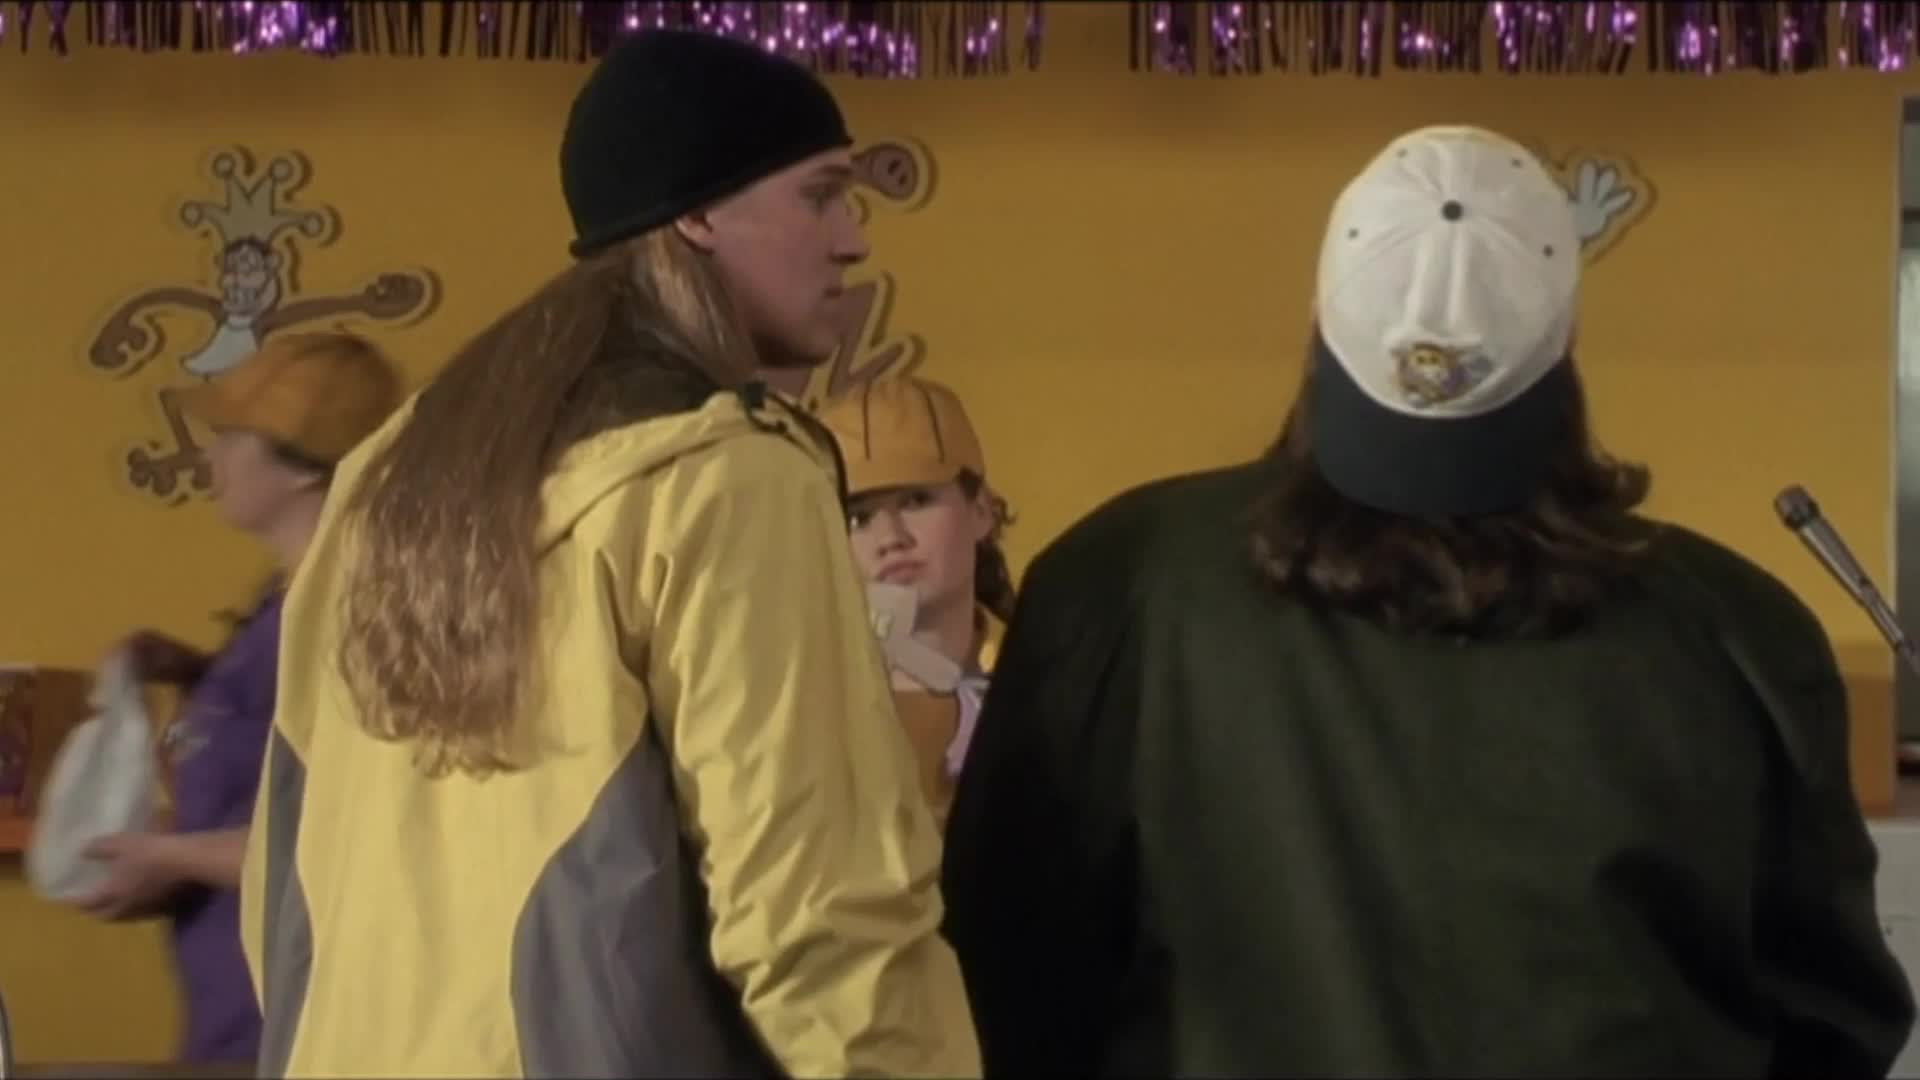 College Basketball, Jay and Silent Bob, K-State, celebs, jason mewes, Jay and Silent Bob watch the Sunflower Showdown GIFs